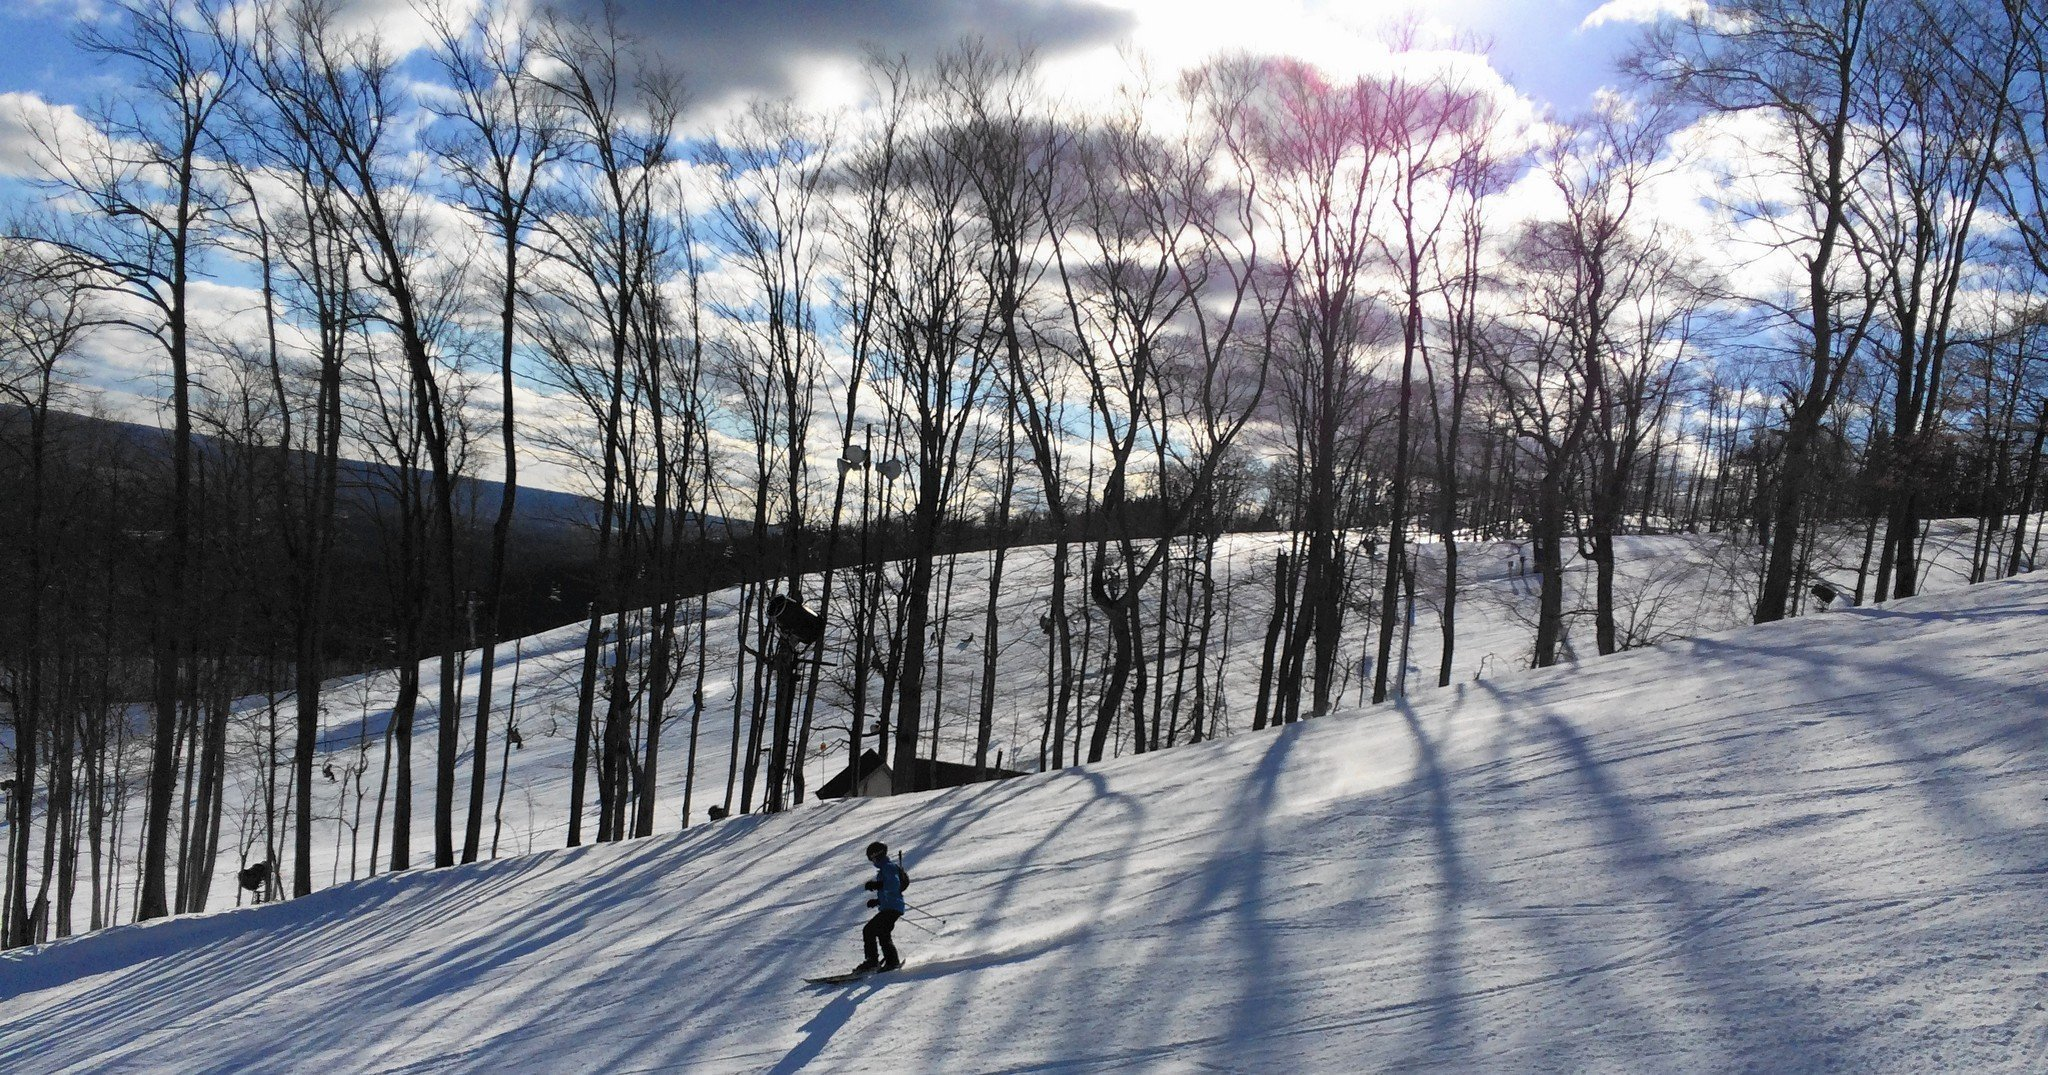 boyne puts a resort spin on midwest skiing - chicago tribune